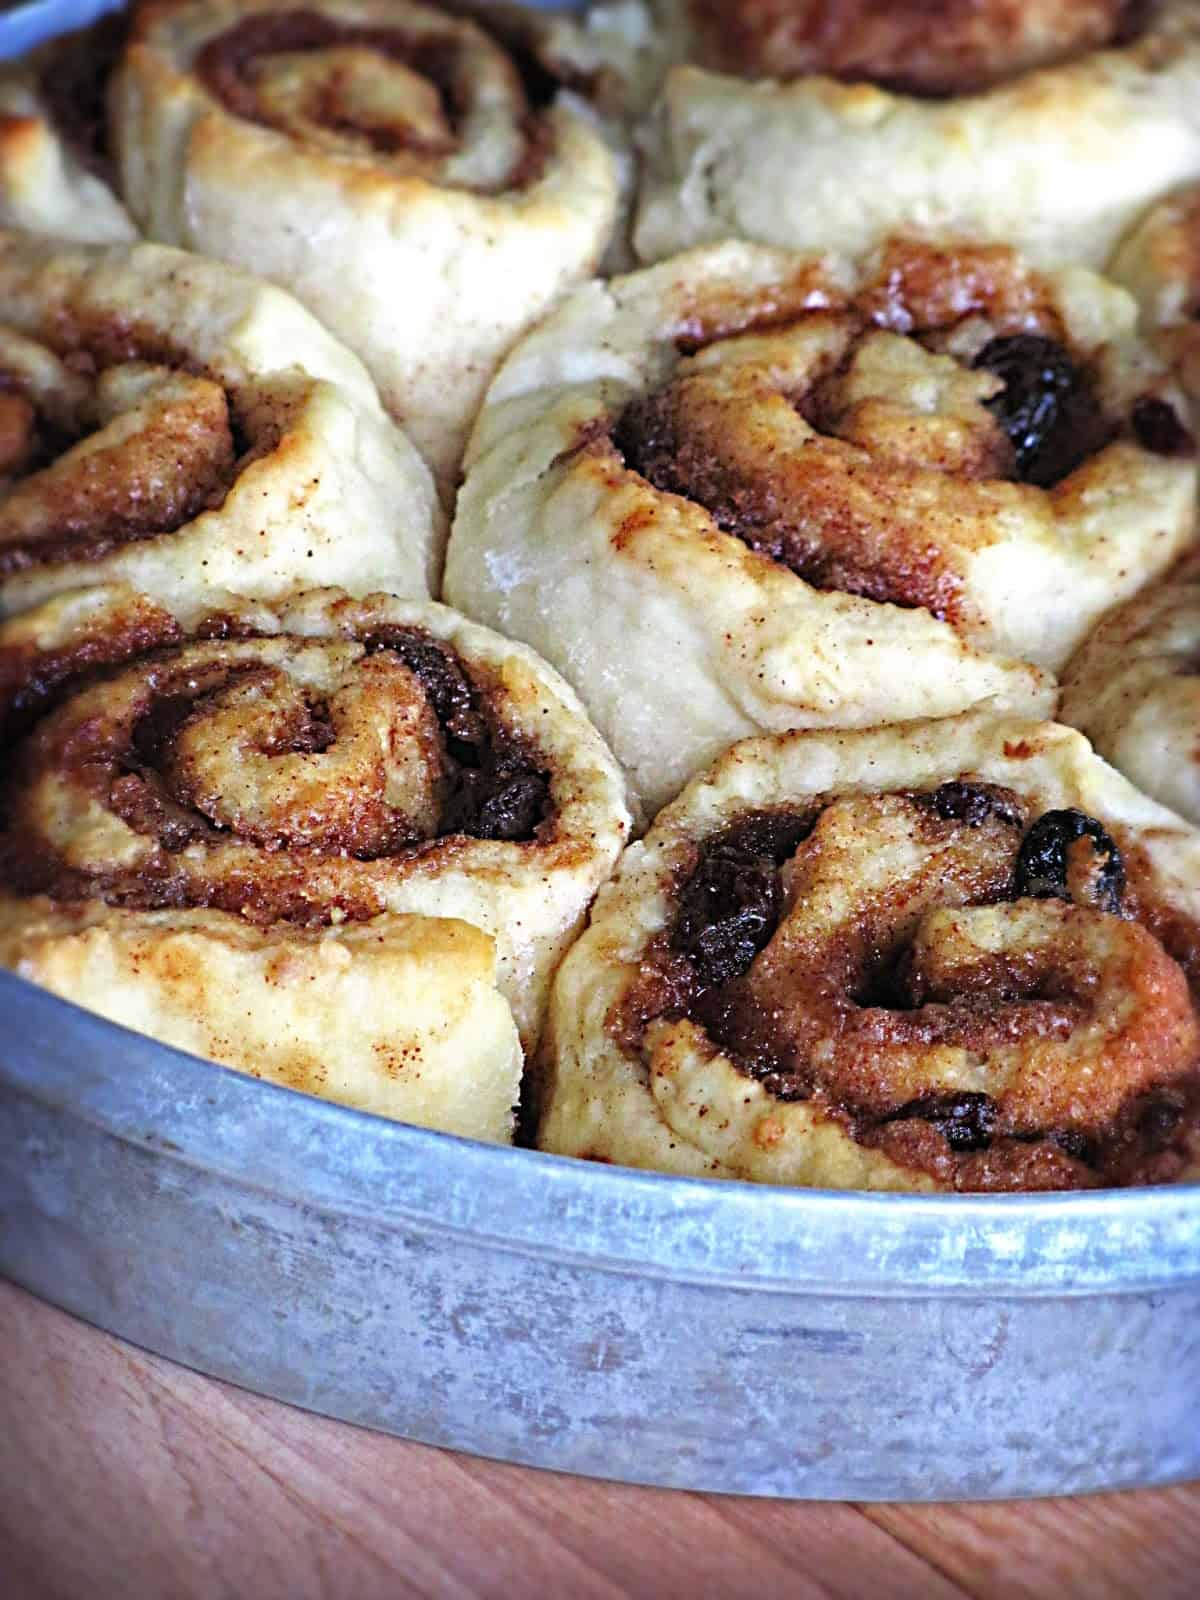 How to make cinnamon buns without yeast